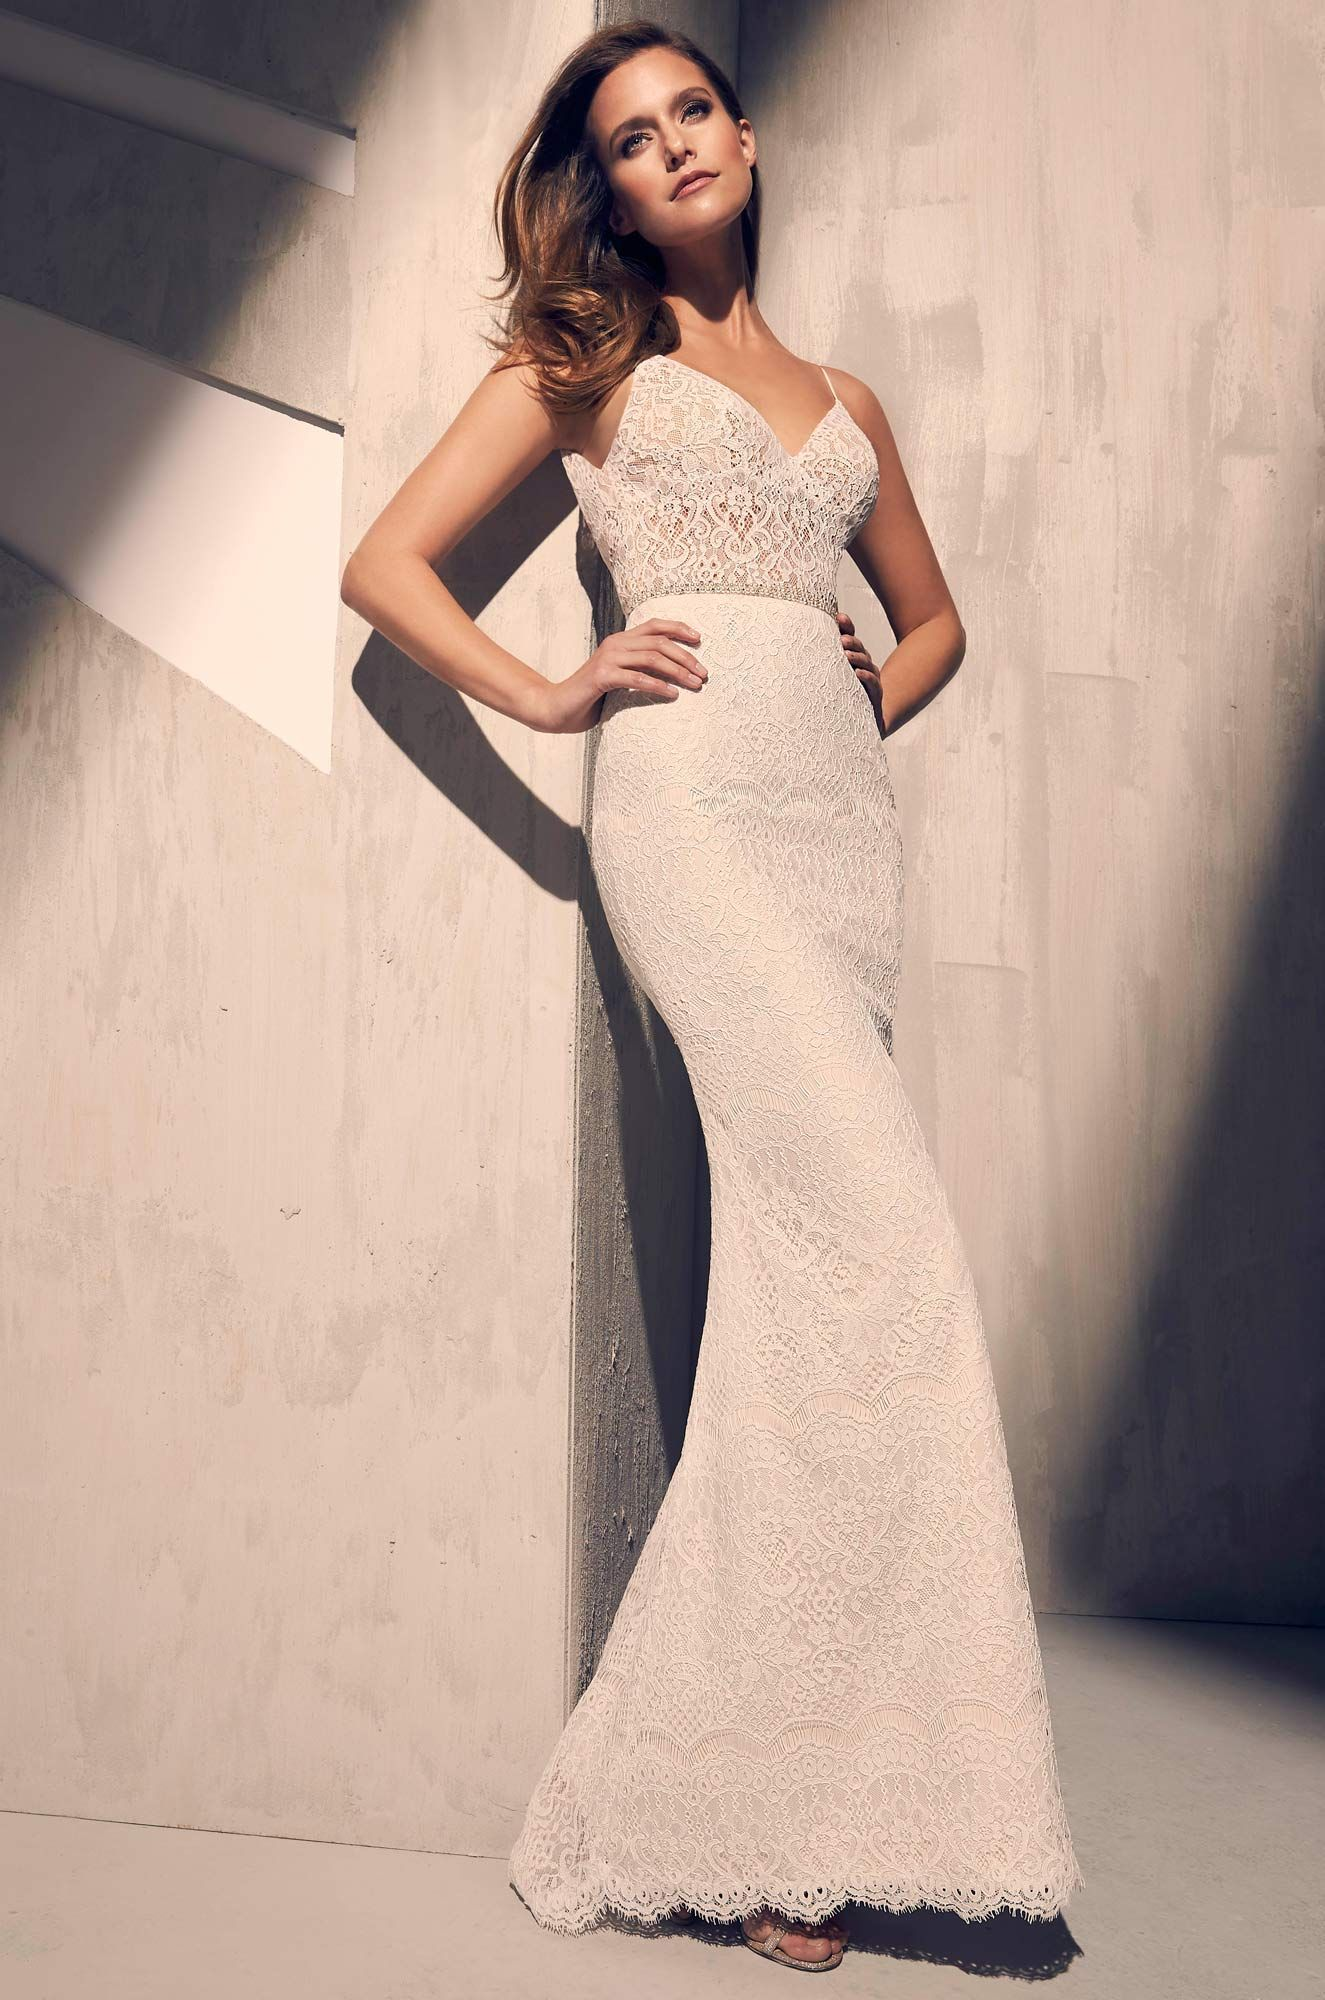 Ornate lace wedding dress style in the big day